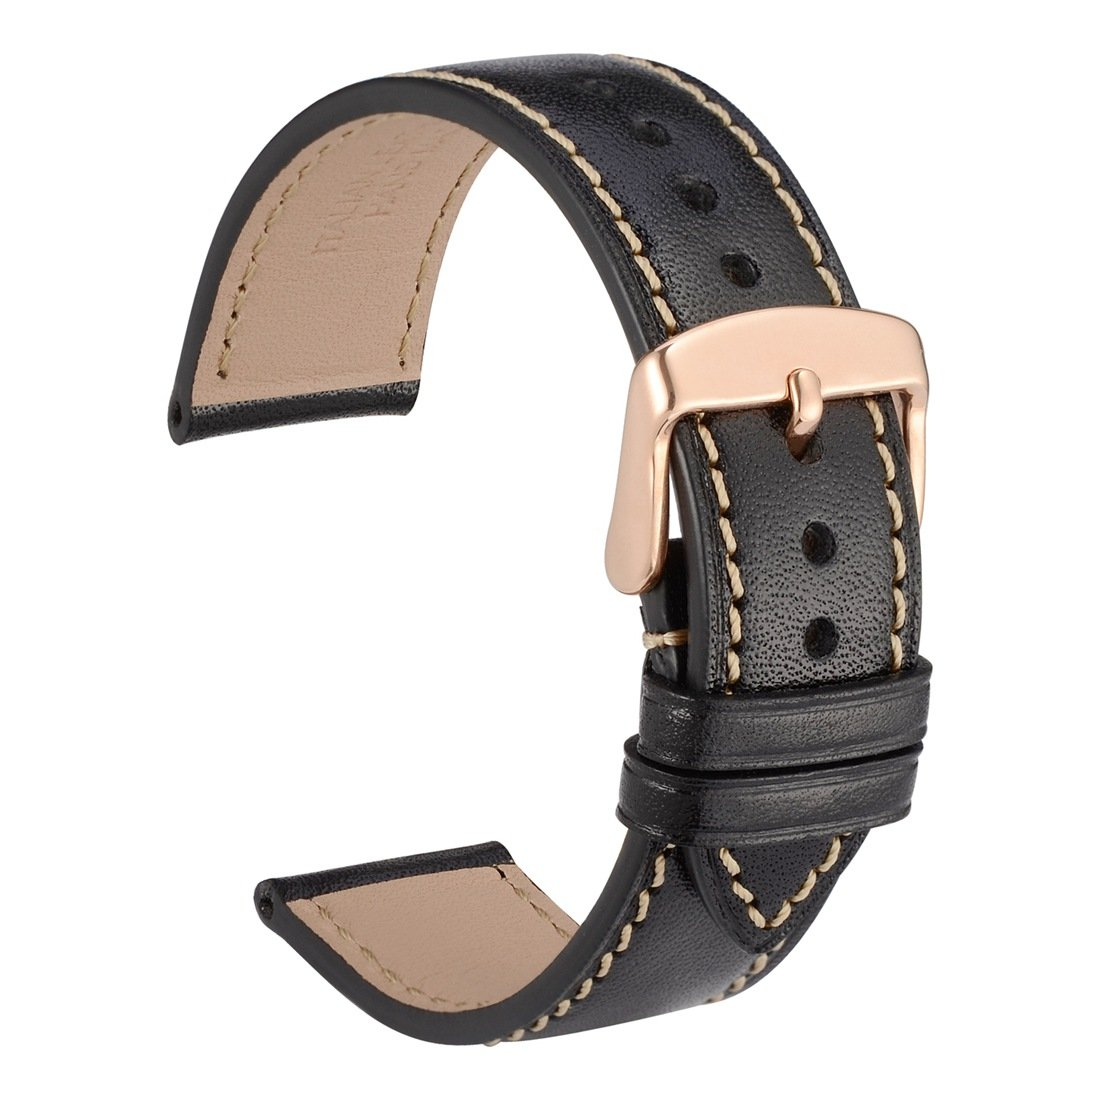 WOCCI 22mm Full Grain Leather Watch Band with Rose Gold Buckle, Sports-Style Strap, Replacement Bracelet (Black)